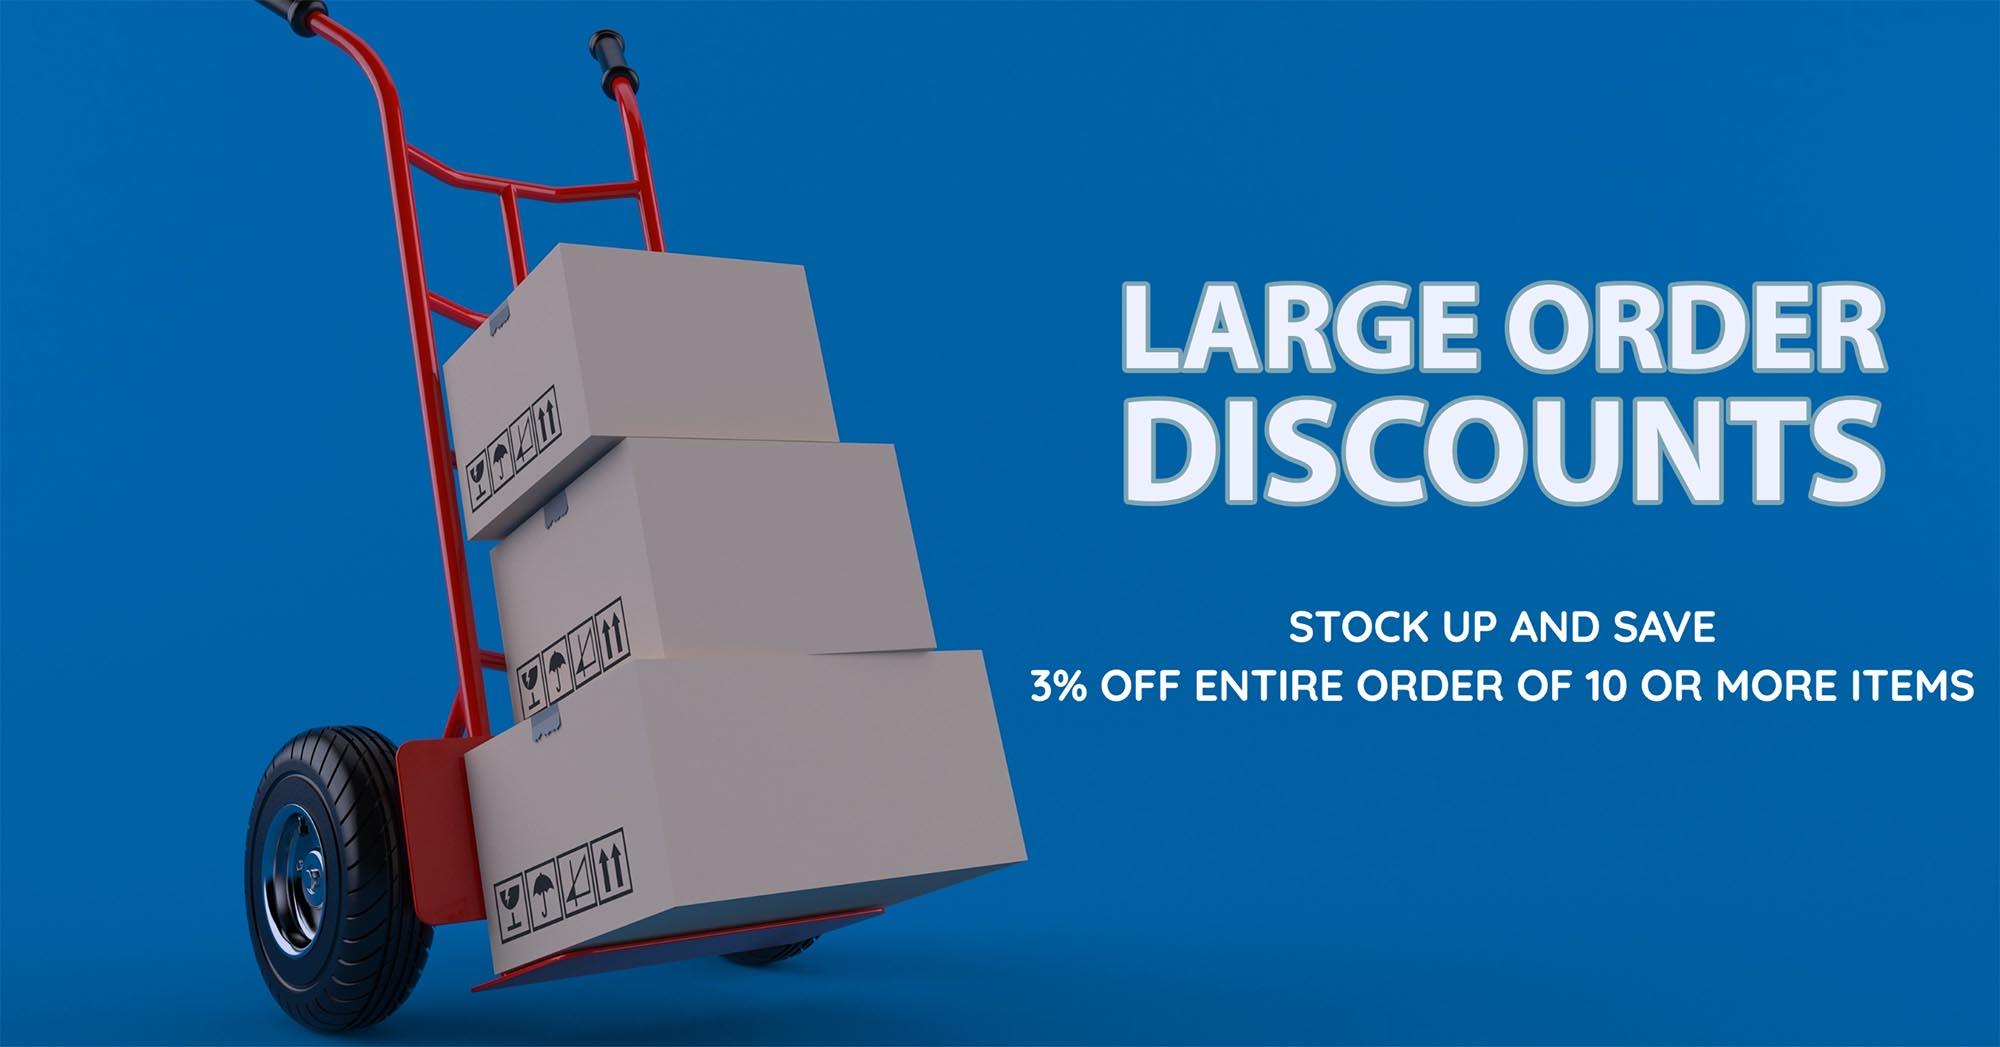 Stock up and save 3% on your entire order with our Large Order Discount.